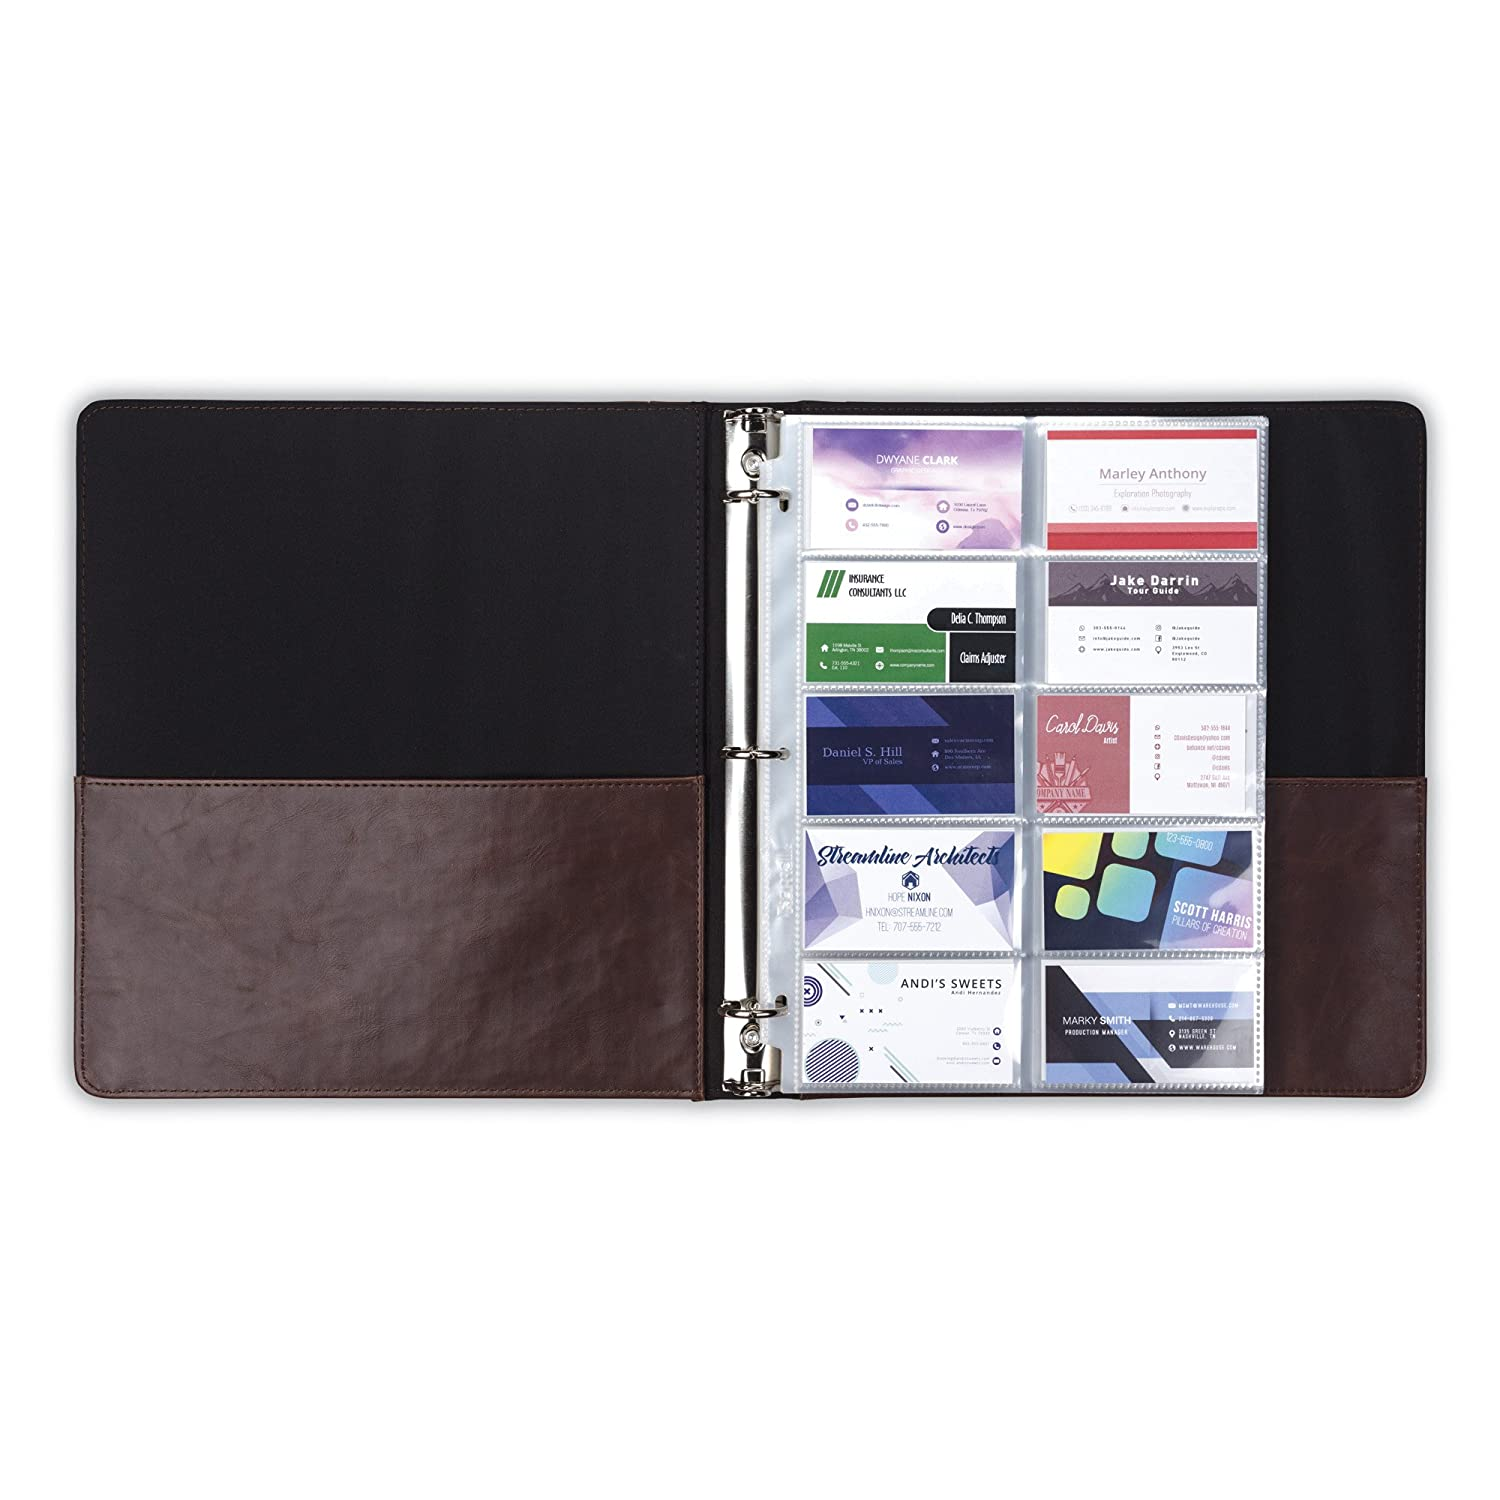 2 Pocket Top Loading 25 Pack Samsill 4x6 Photo Album Pages for 3 Ring Binder//Archival Photo Sleeves//Photo Holder//Postcard Holder//Sleeve Protectors